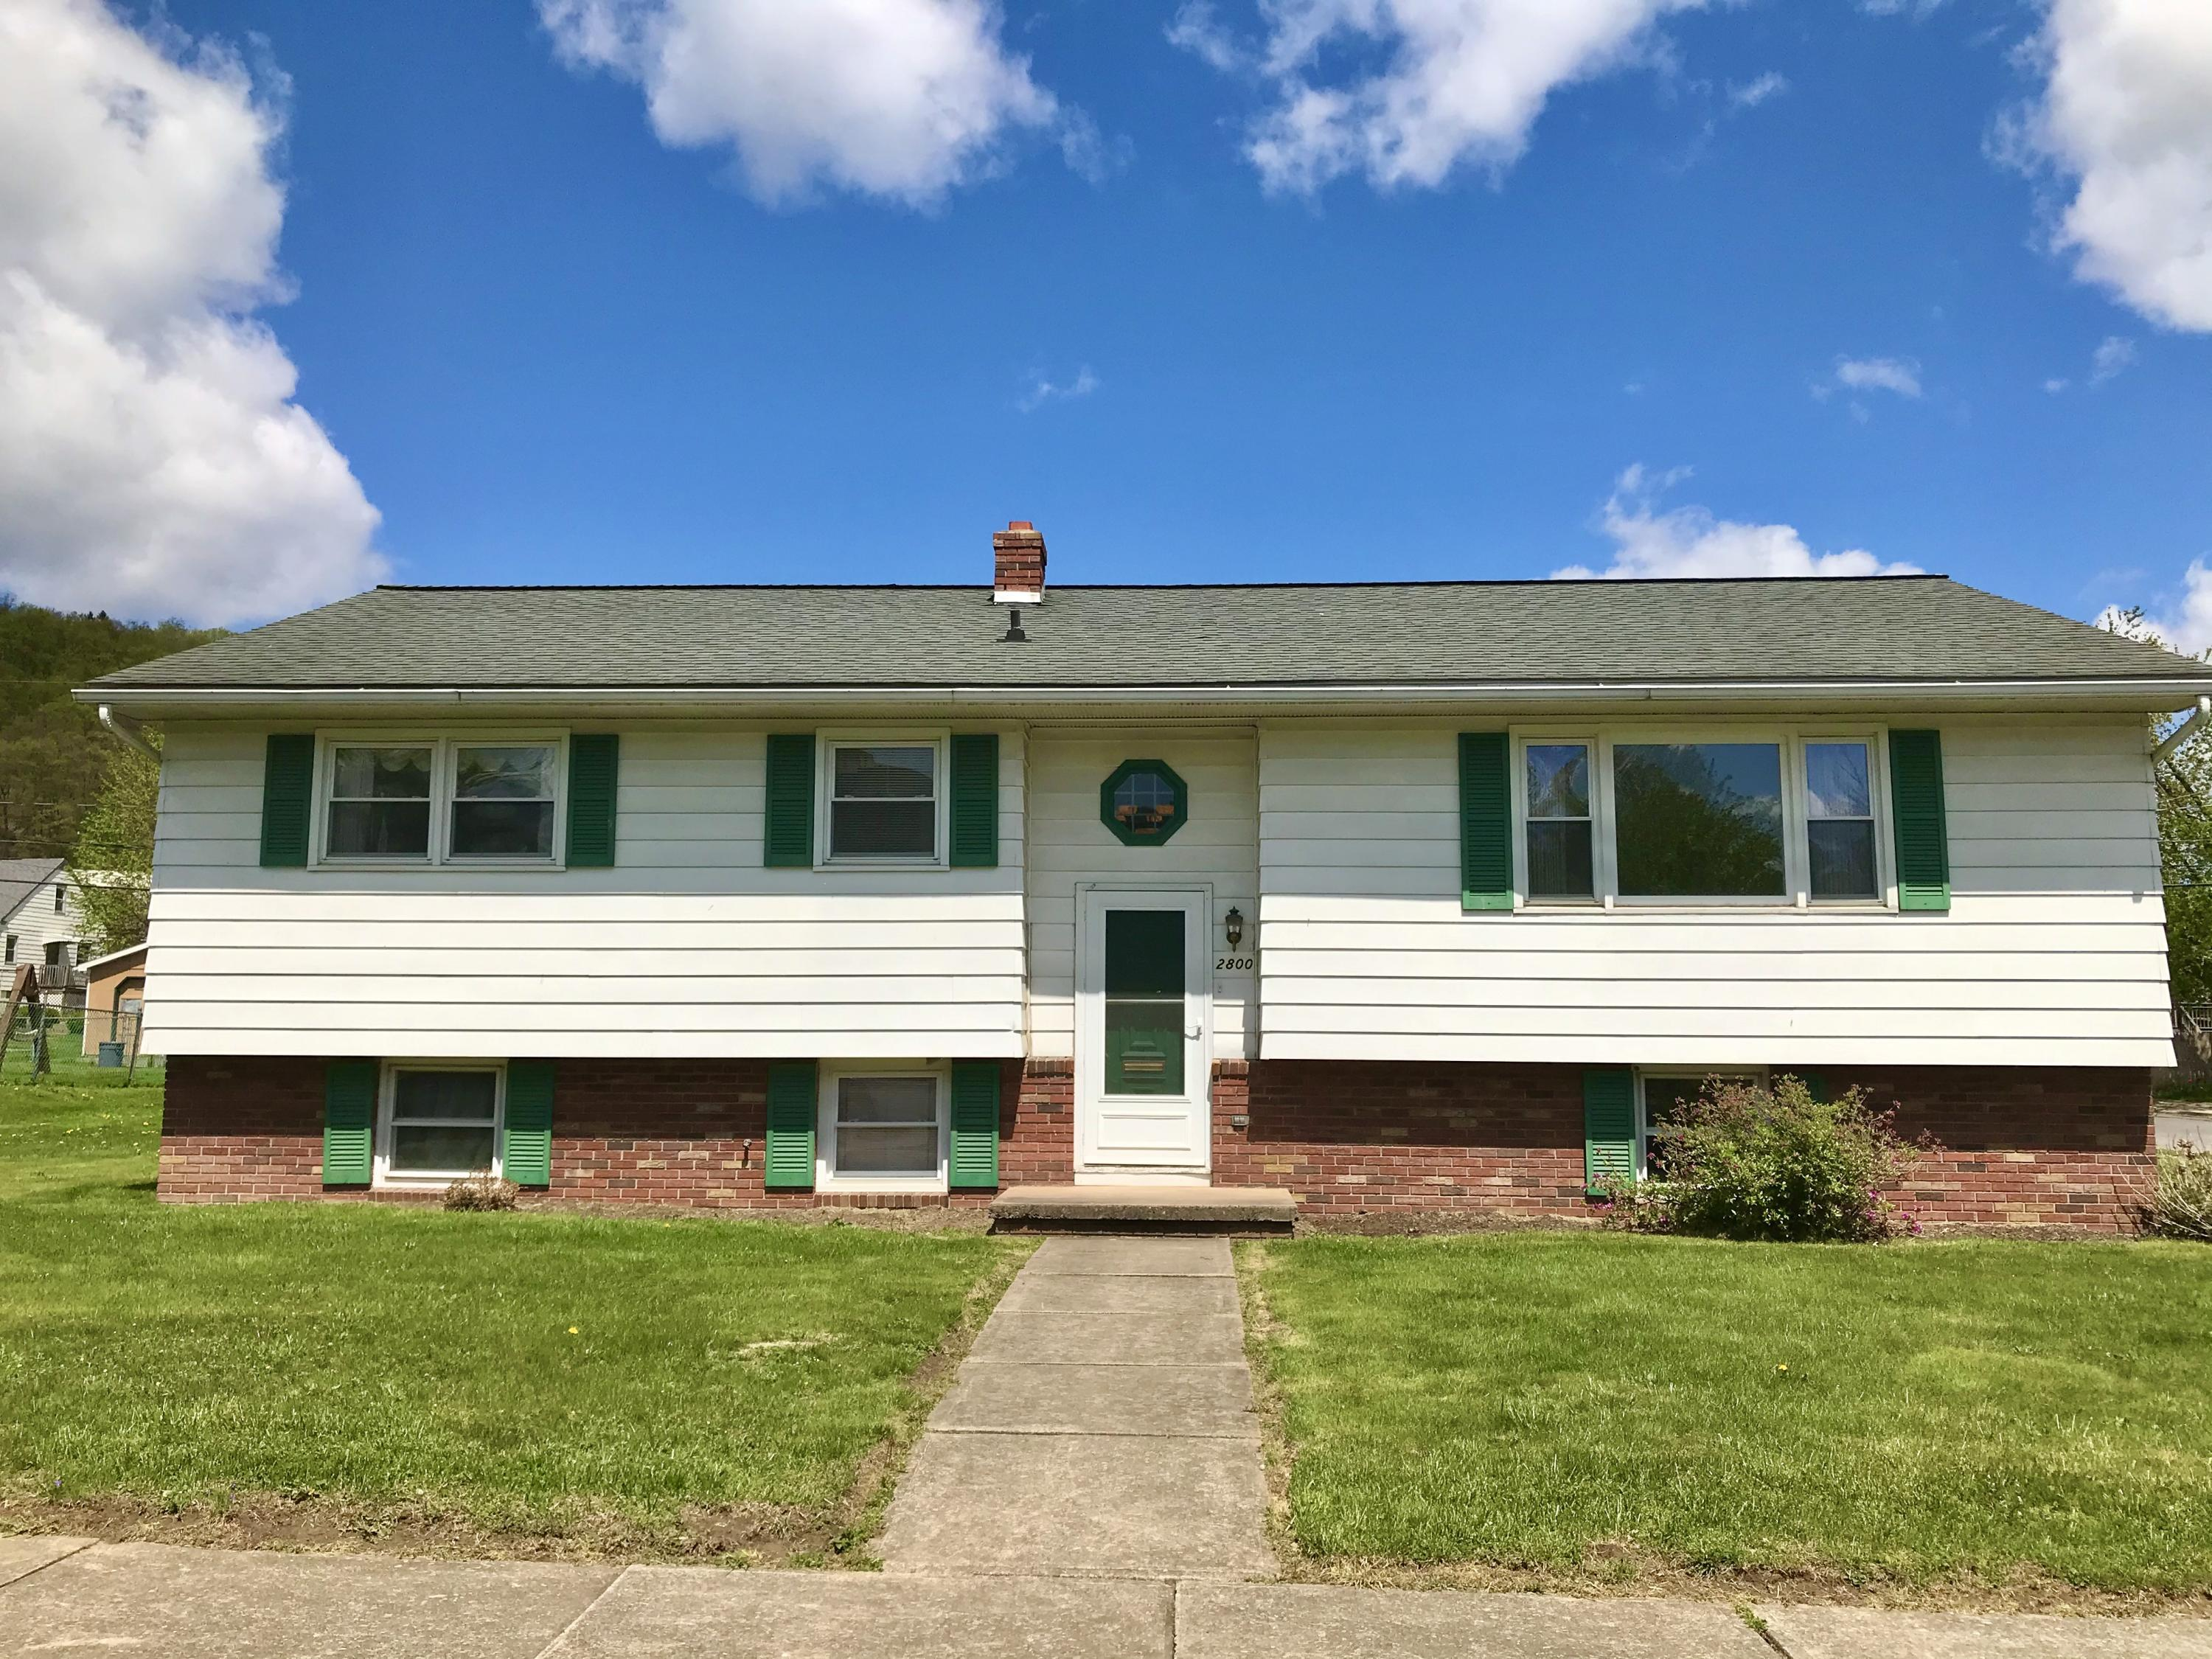 2800 DOVE STREET, Williamsport, PA 17701, 3 Bedrooms Bedrooms, ,2 BathroomsBathrooms,Residential,For sale,DOVE,WB-92430